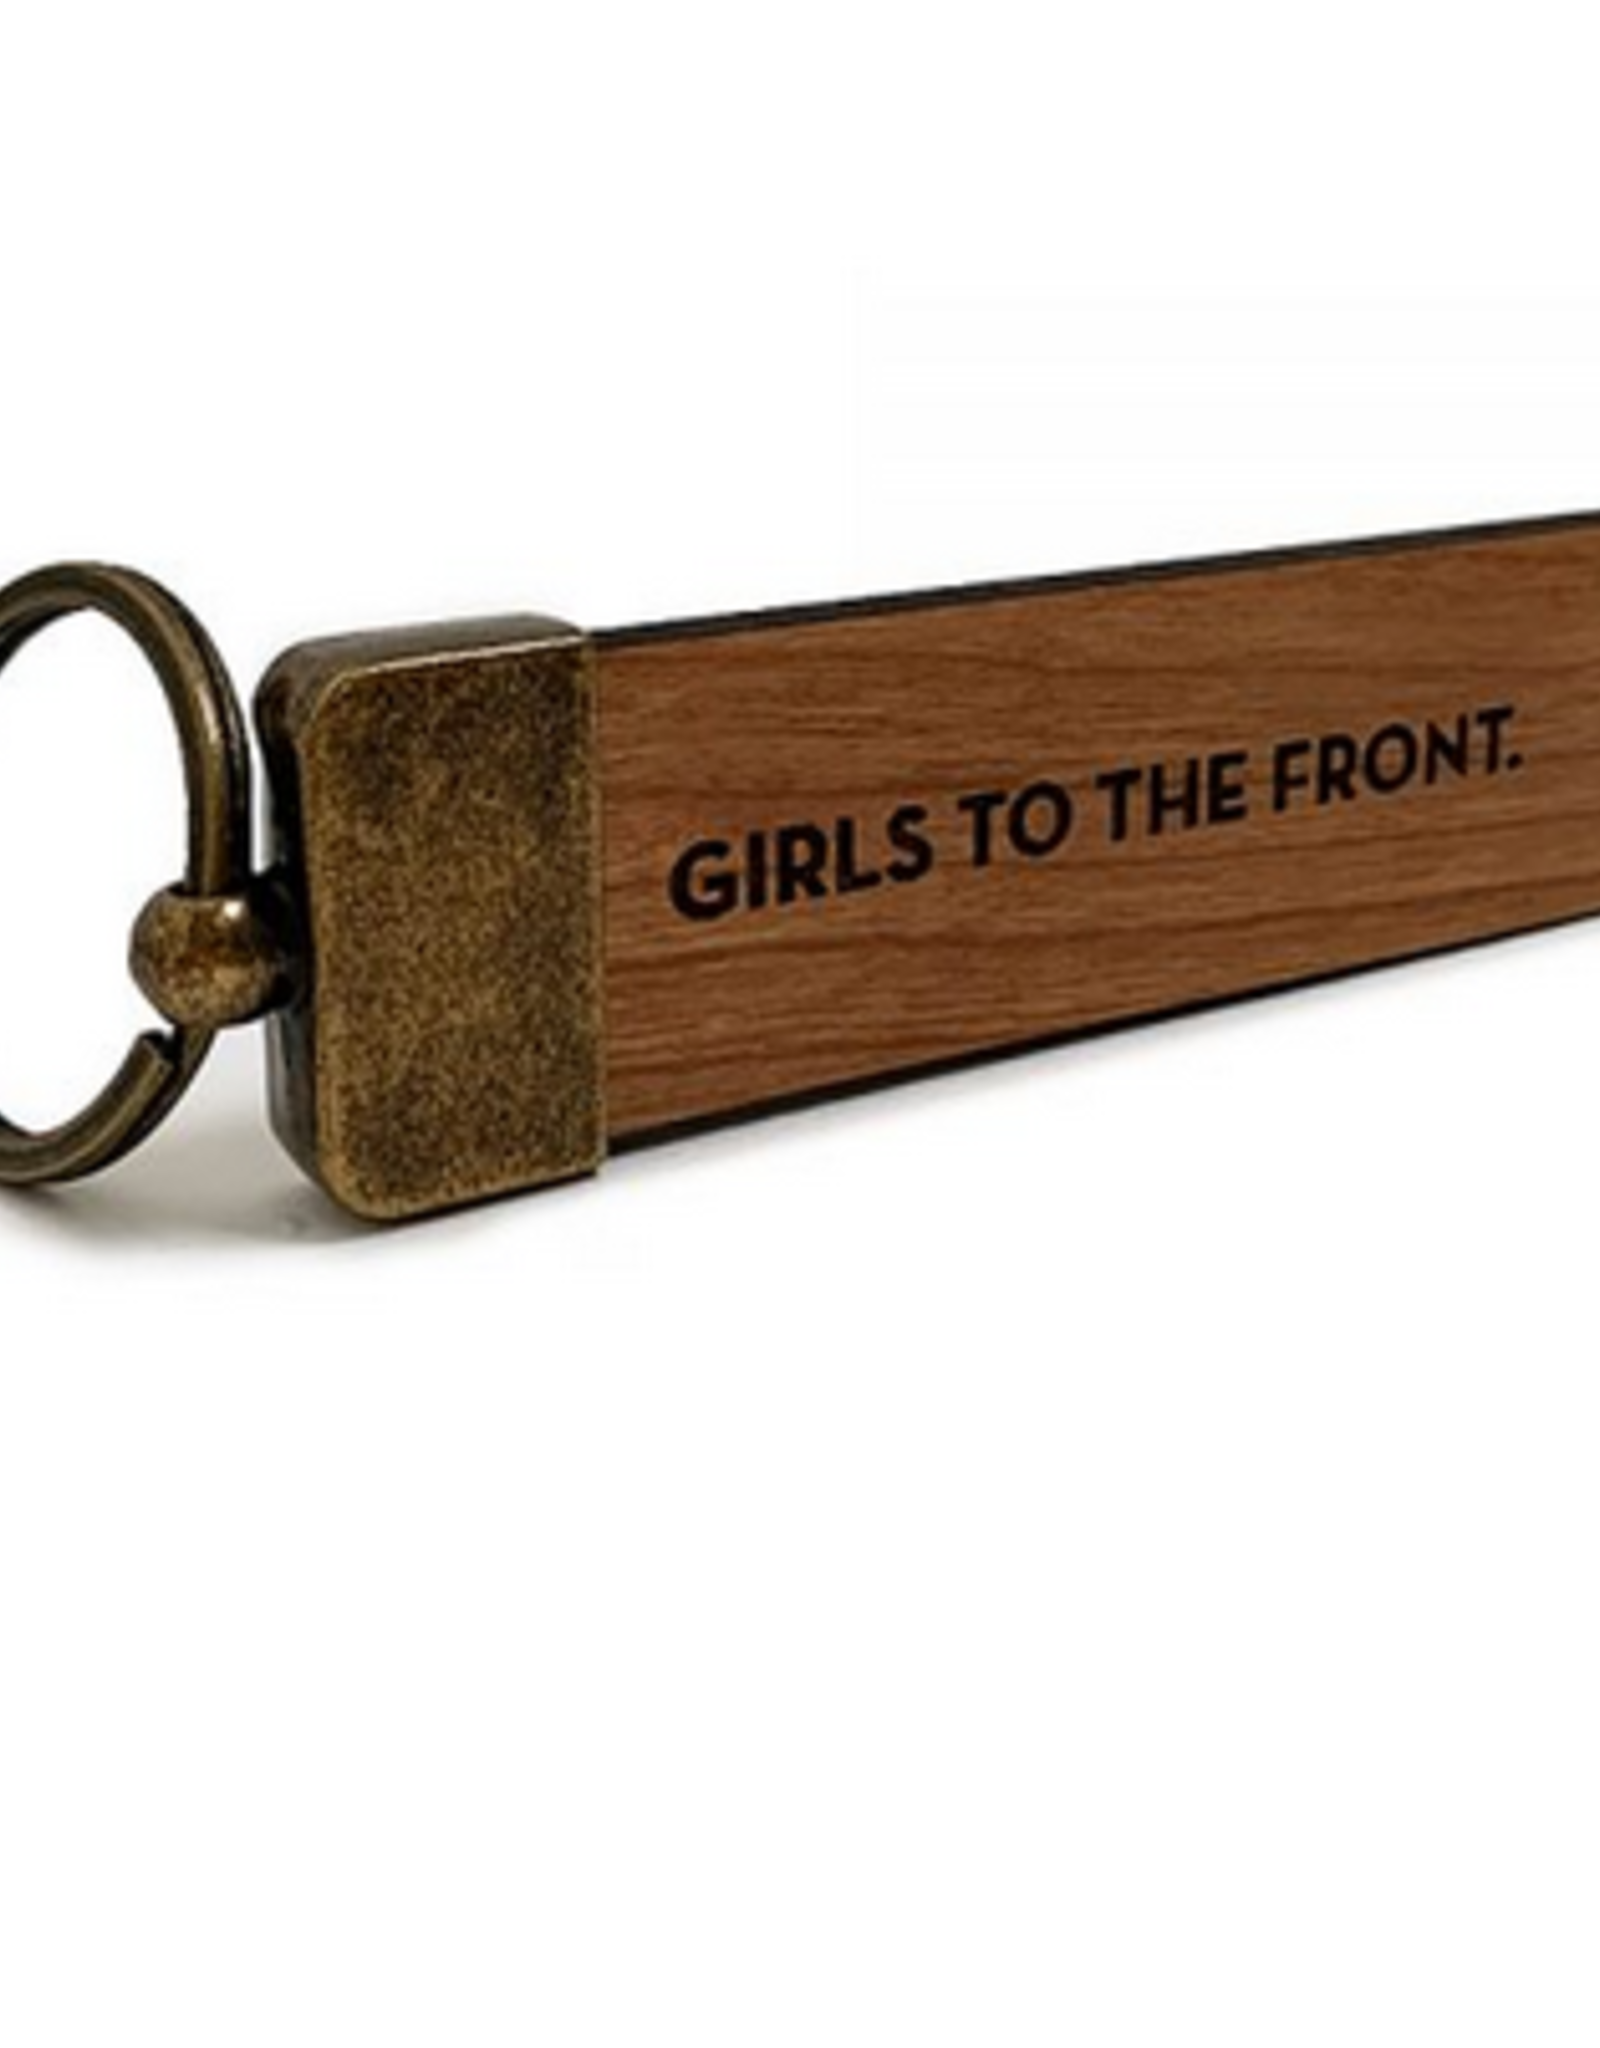 Sapling Press Girls to the Front Keychain